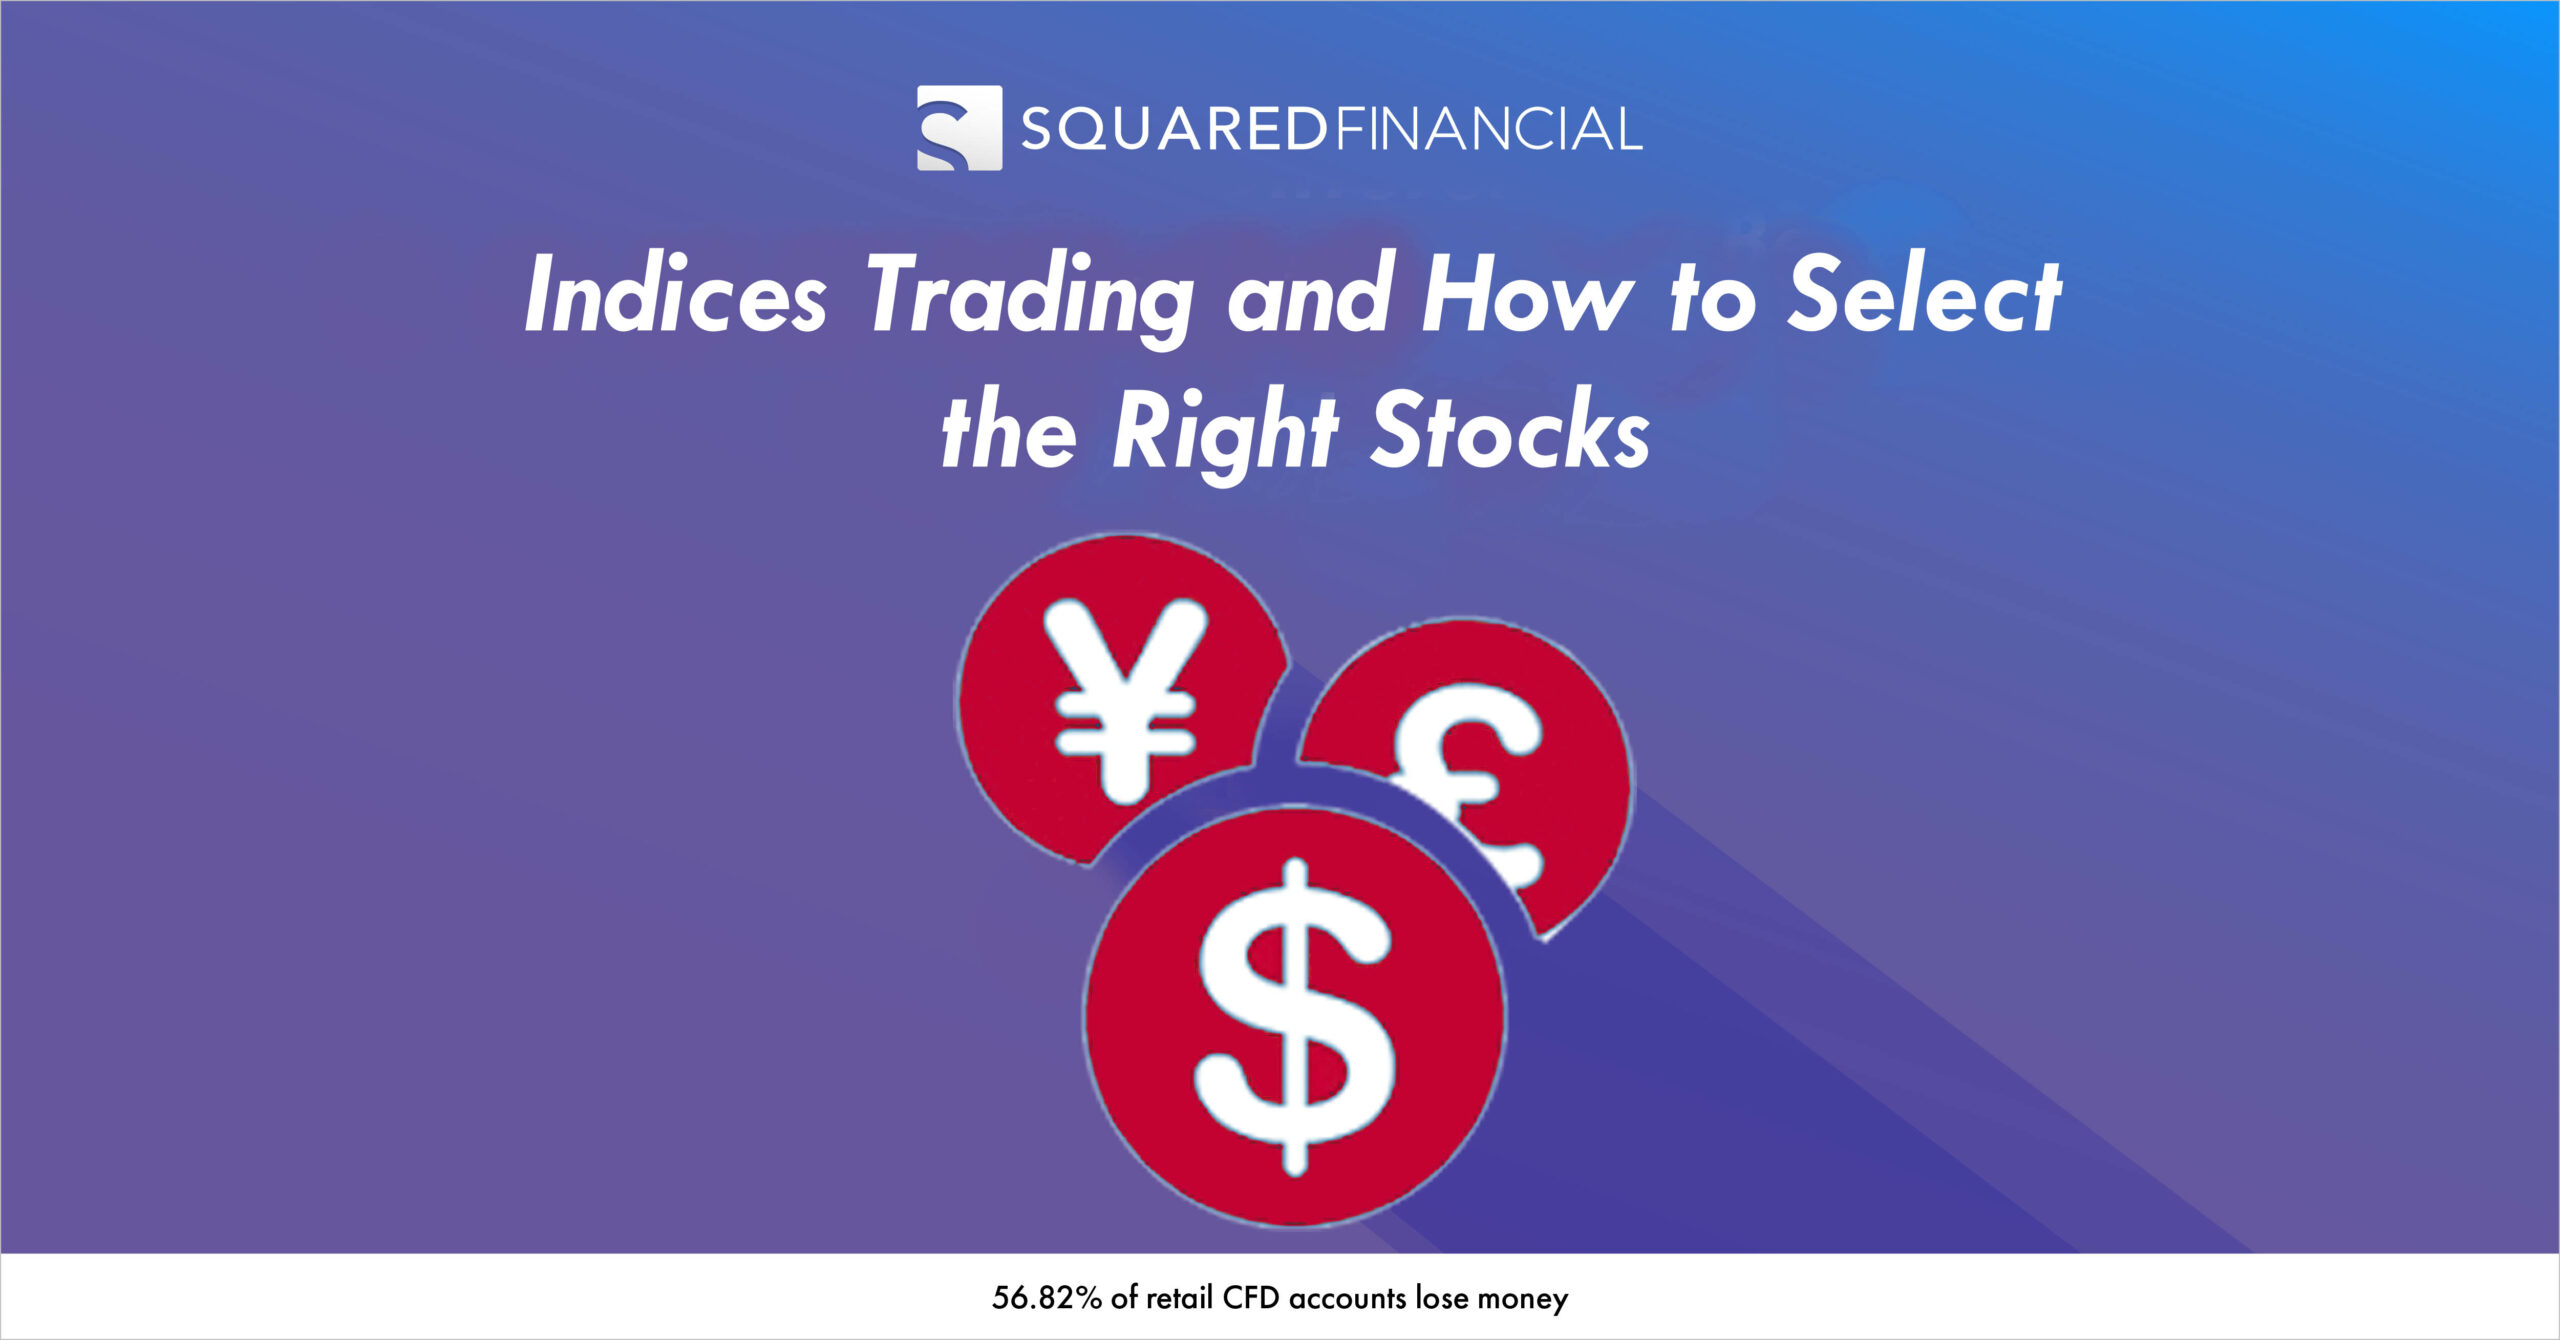 Indices Trading and How to Select the Right Stocks – SquaredFinancial